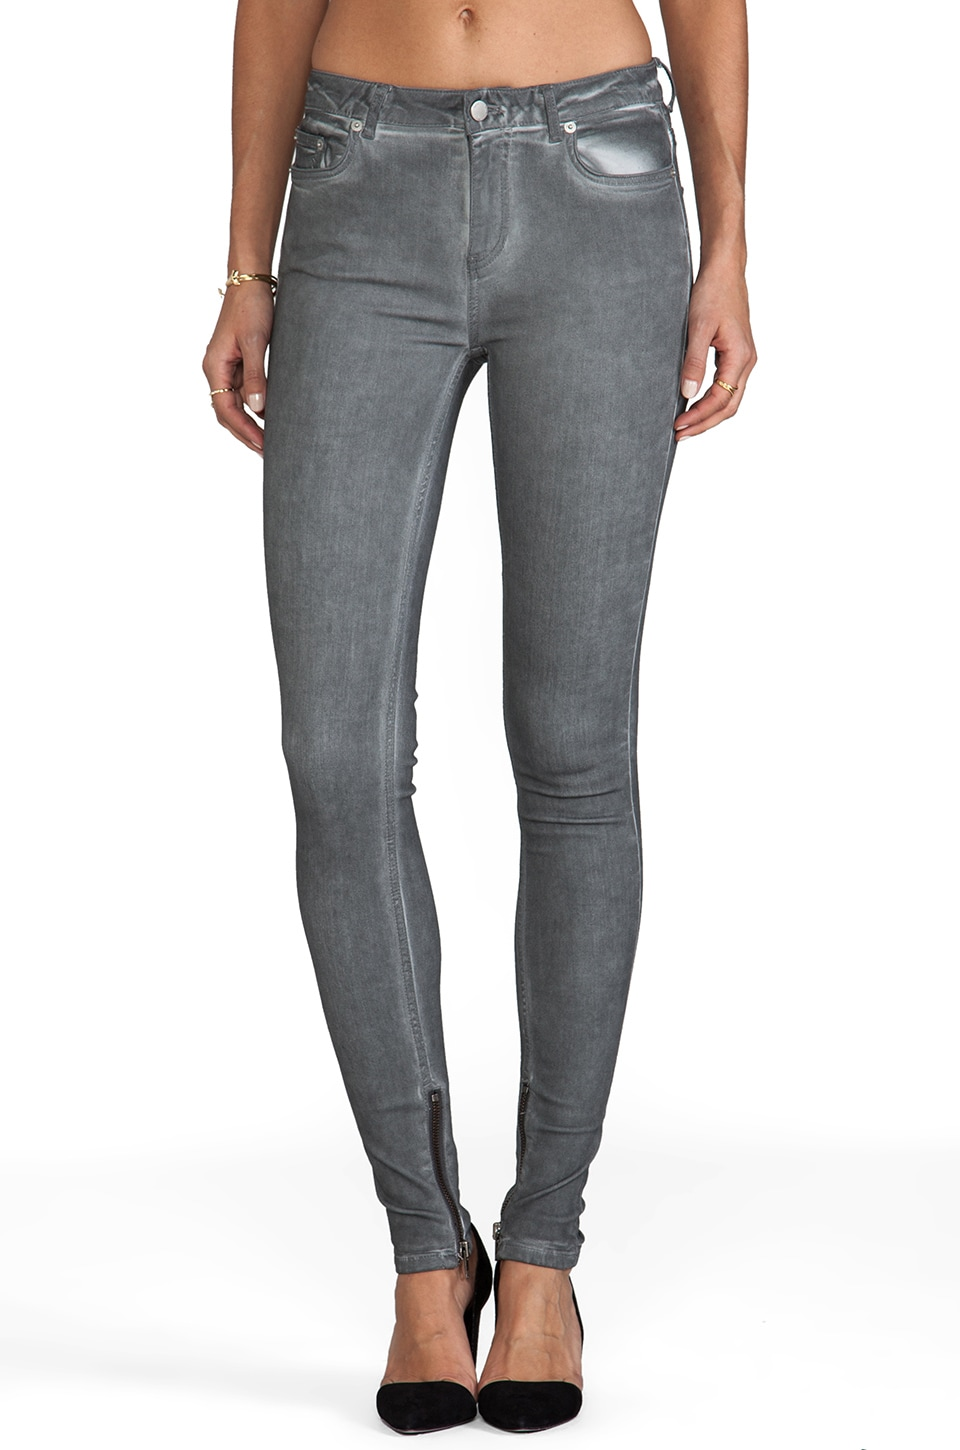 BLK DNM Jeans 4 in Dusty Grey